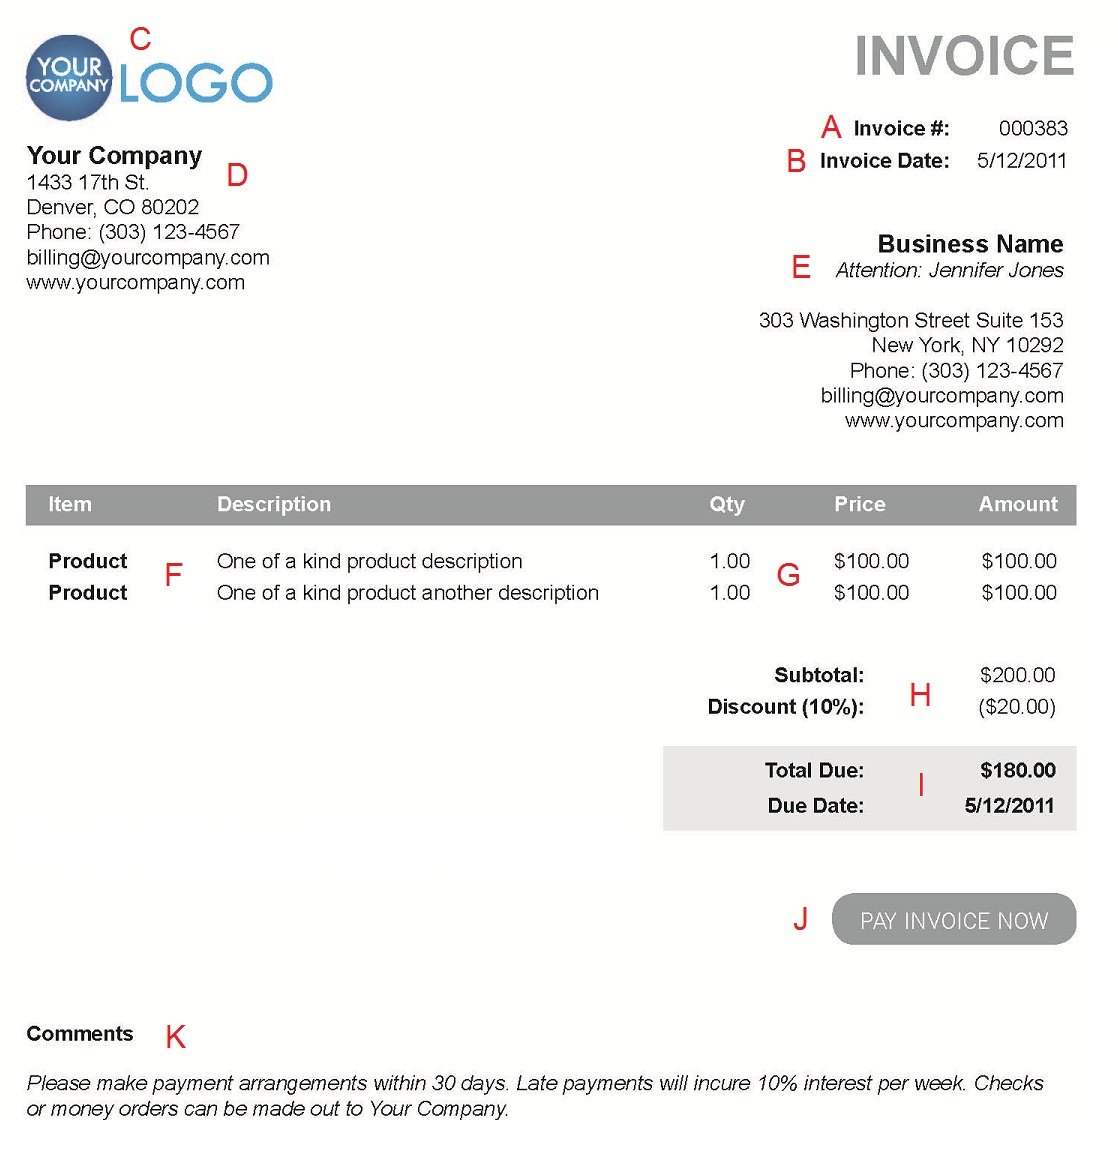 Totallocalus  Surprising The  Different Sections Of An Electronic Payment Invoice With Entrancing A  With Attractive Receipt Book Also How To Spell Receipt In Addition Store Receipts And Receipt Organizer As Well As Receipts App Additionally Online Invoice Program From Paysimplecom With Totallocalus  Entrancing The  Different Sections Of An Electronic Payment Invoice With Attractive A  And Surprising Receipt Book Also How To Spell Receipt In Addition Store Receipts From Paysimplecom